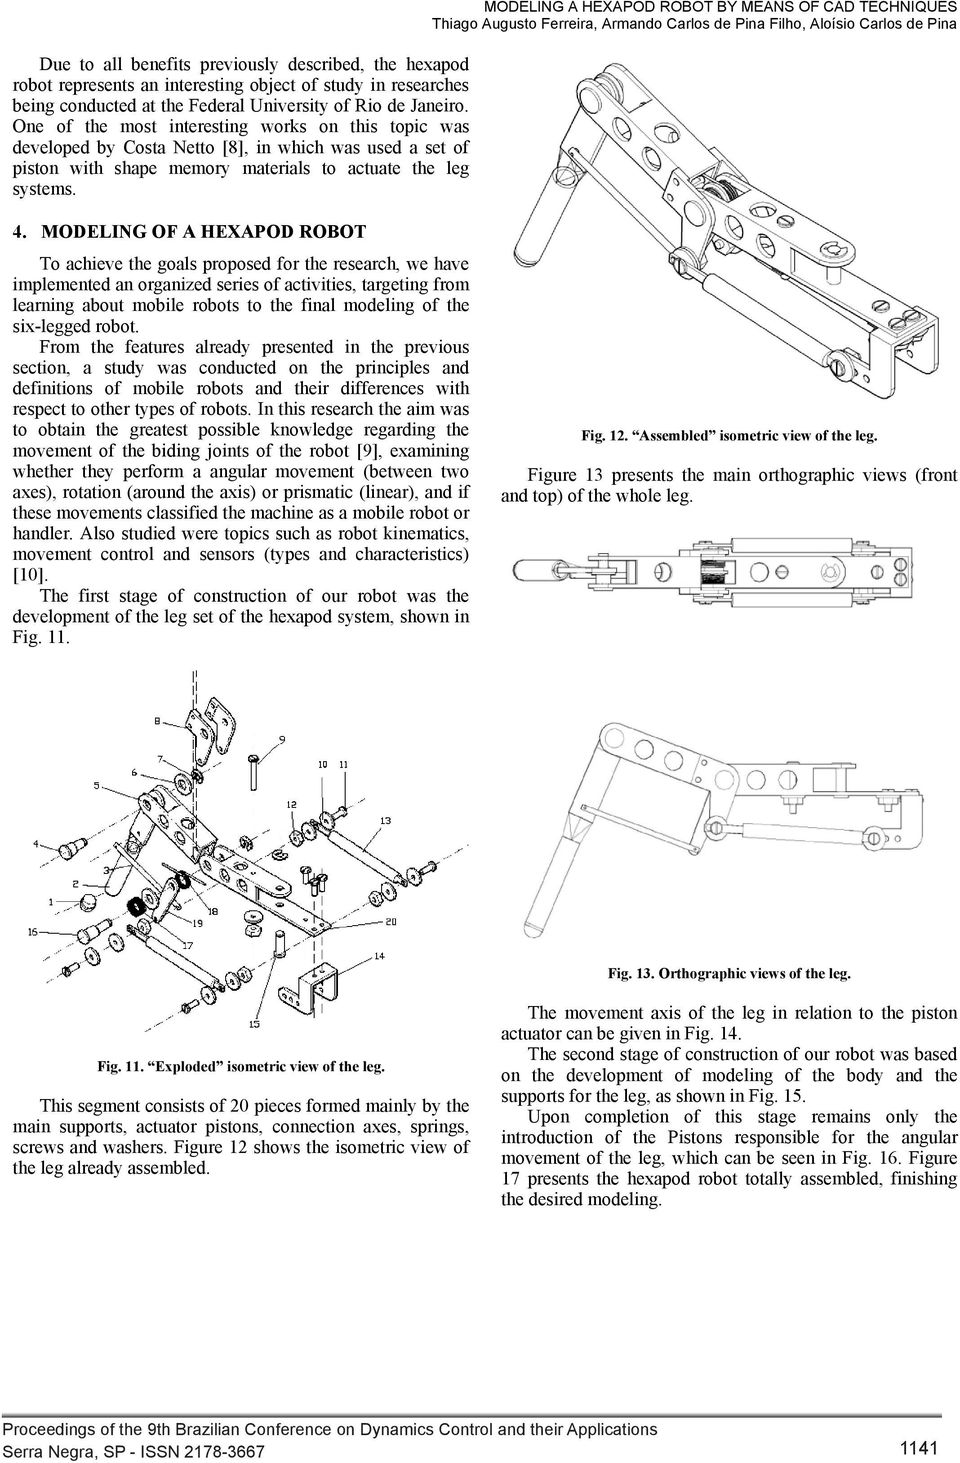 MODELING A HEXAPOD ROBOT BY MEANS OF CAD TECHNIQUES - PDF